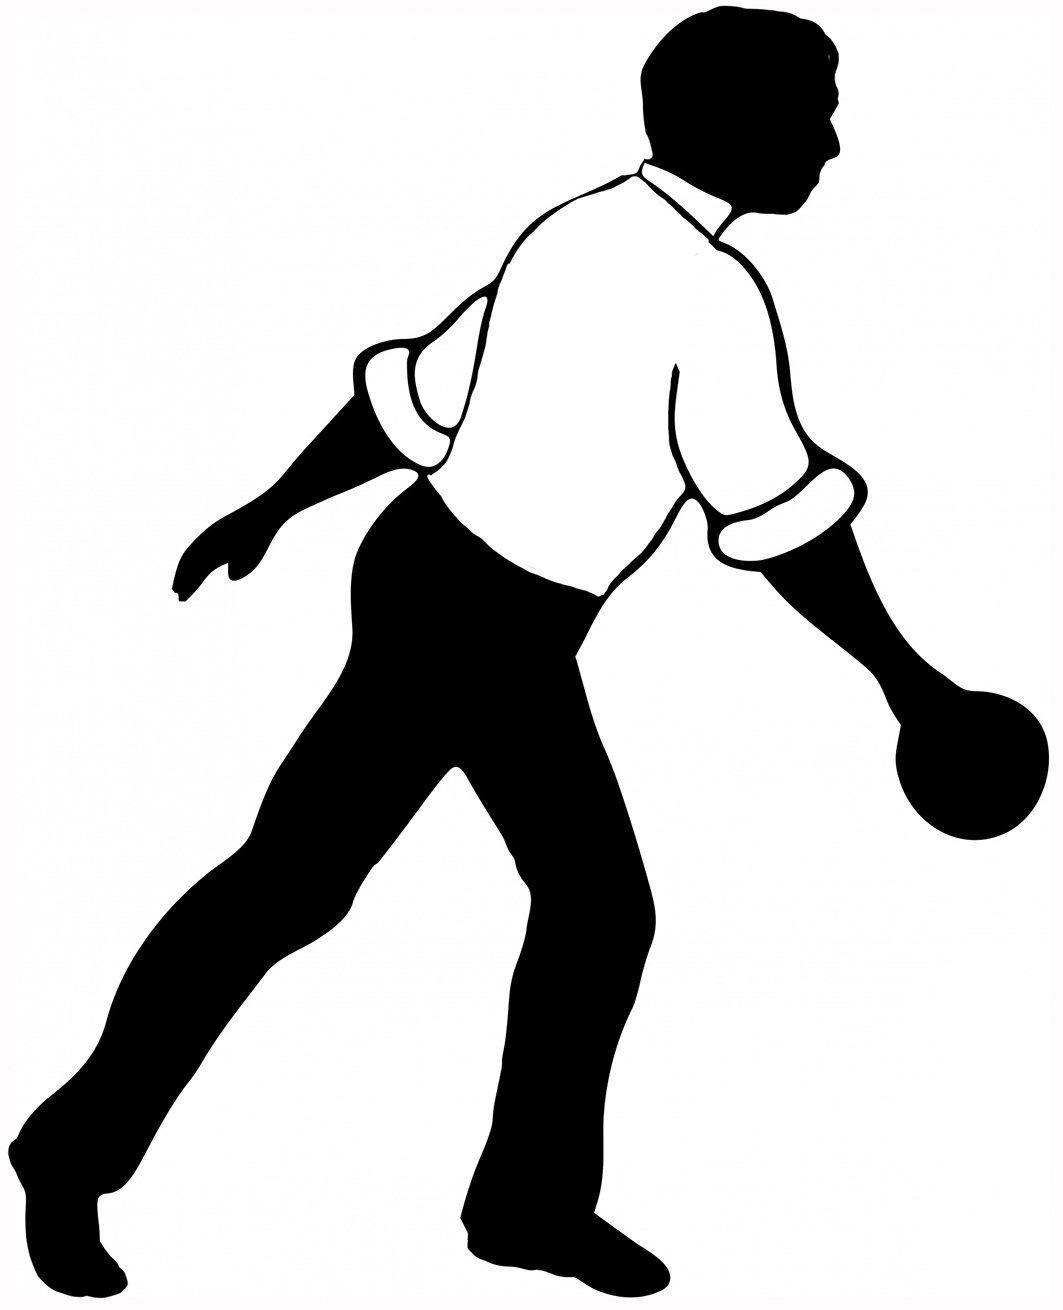 With ball in white. Bowling clipart man